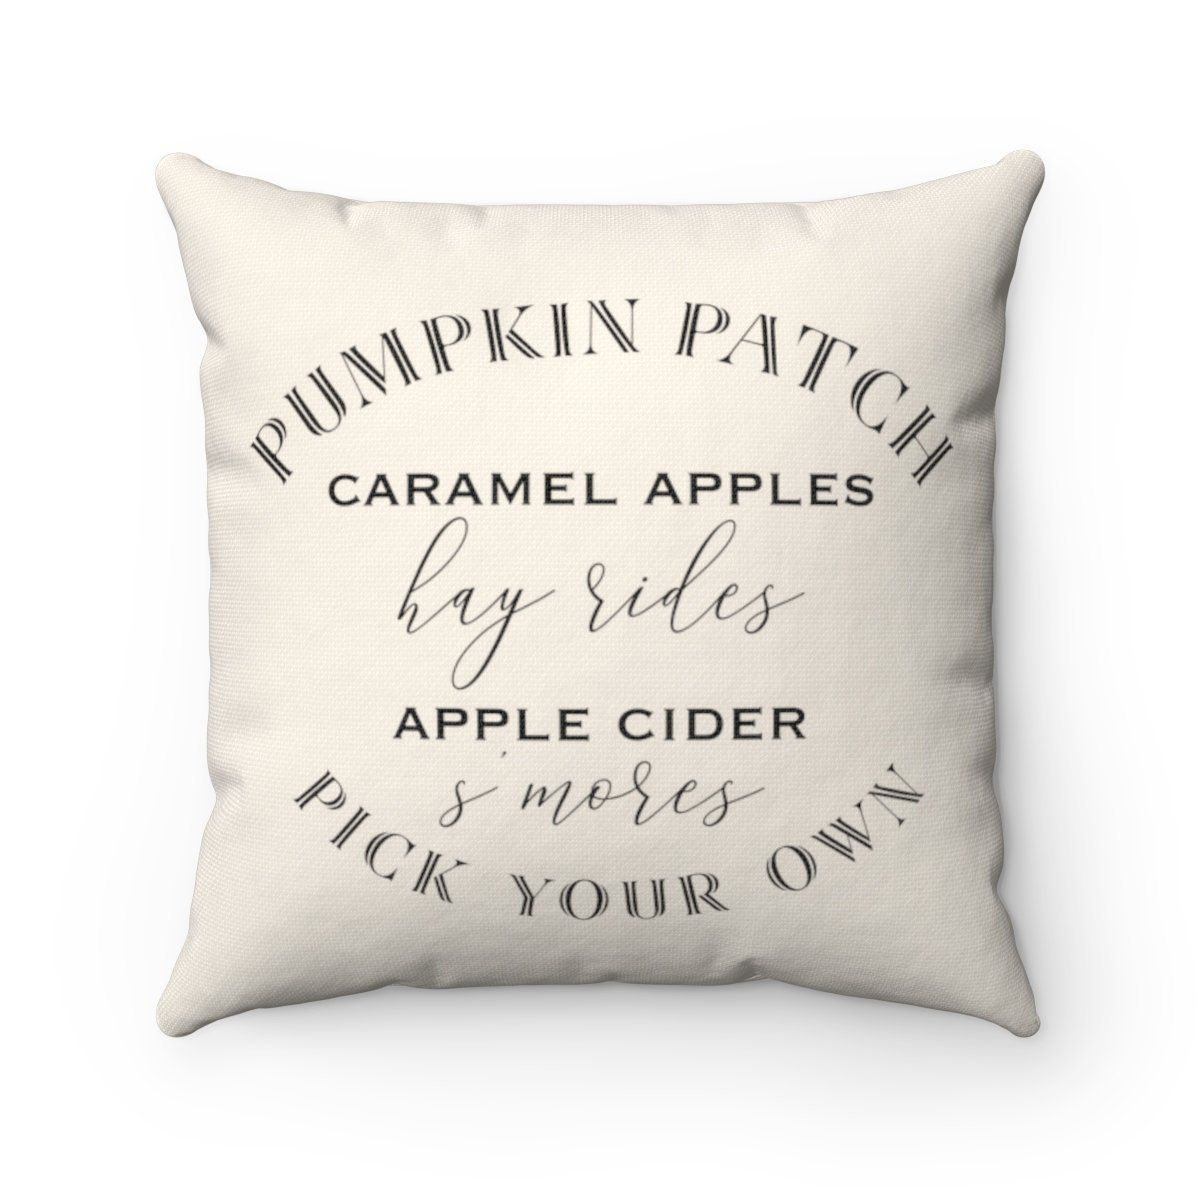 Pumpkin Patch Pillow In 2021 Fall Pillows Patch Pillow Fall Throw Pillows